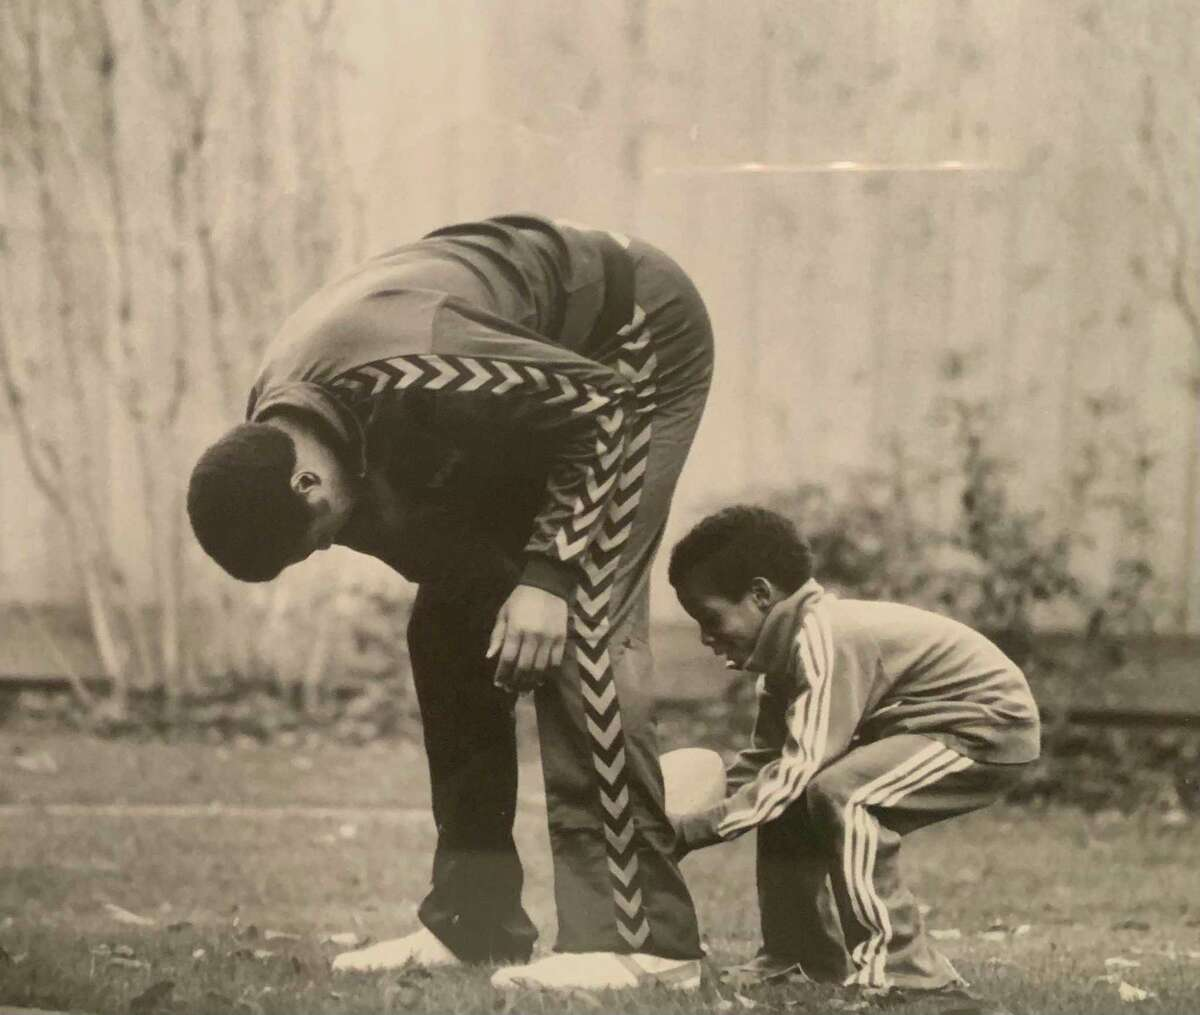 Stephen Silas and his father Paul play football during their time in Seattle in the late 1970s